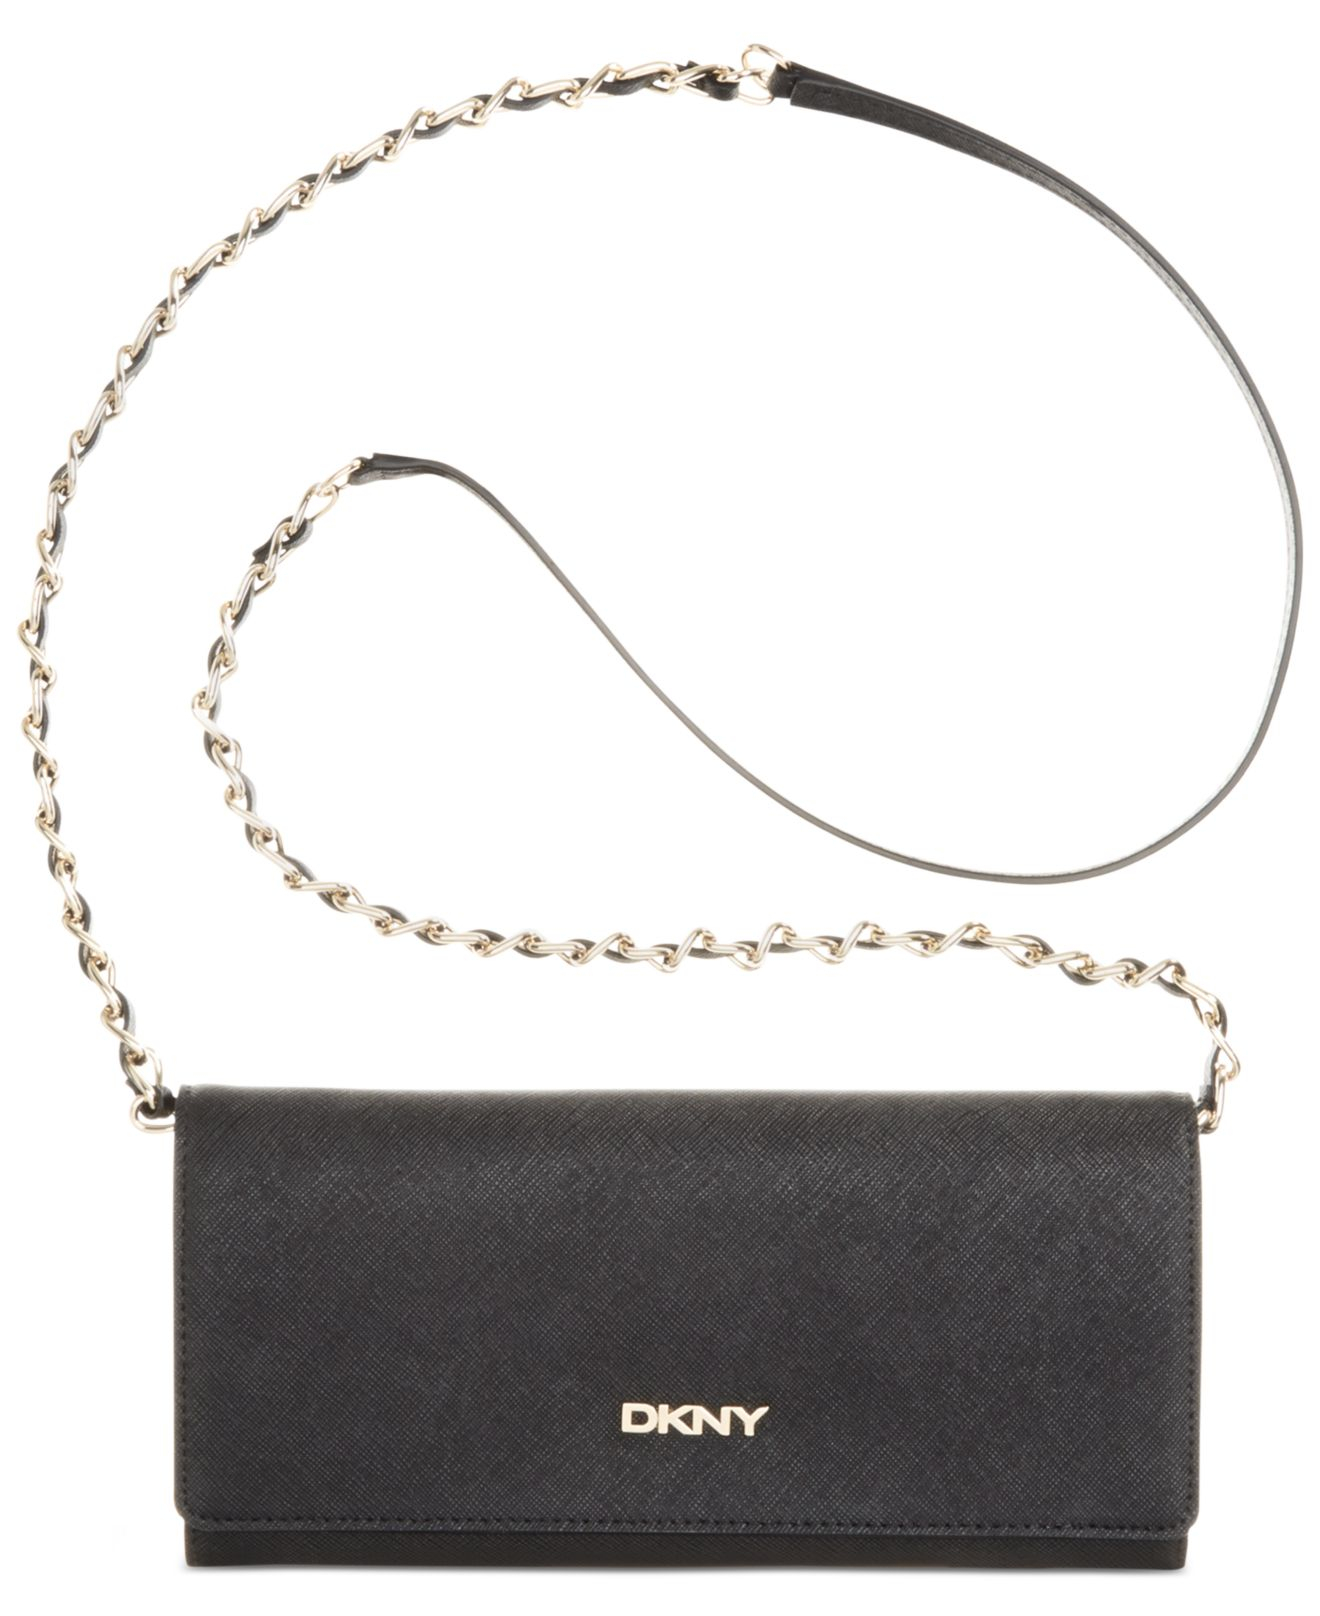 603bd976bae046 DKNY Bryant Park Saffiano Leather Wallet Clutch With Chain Handle in ...